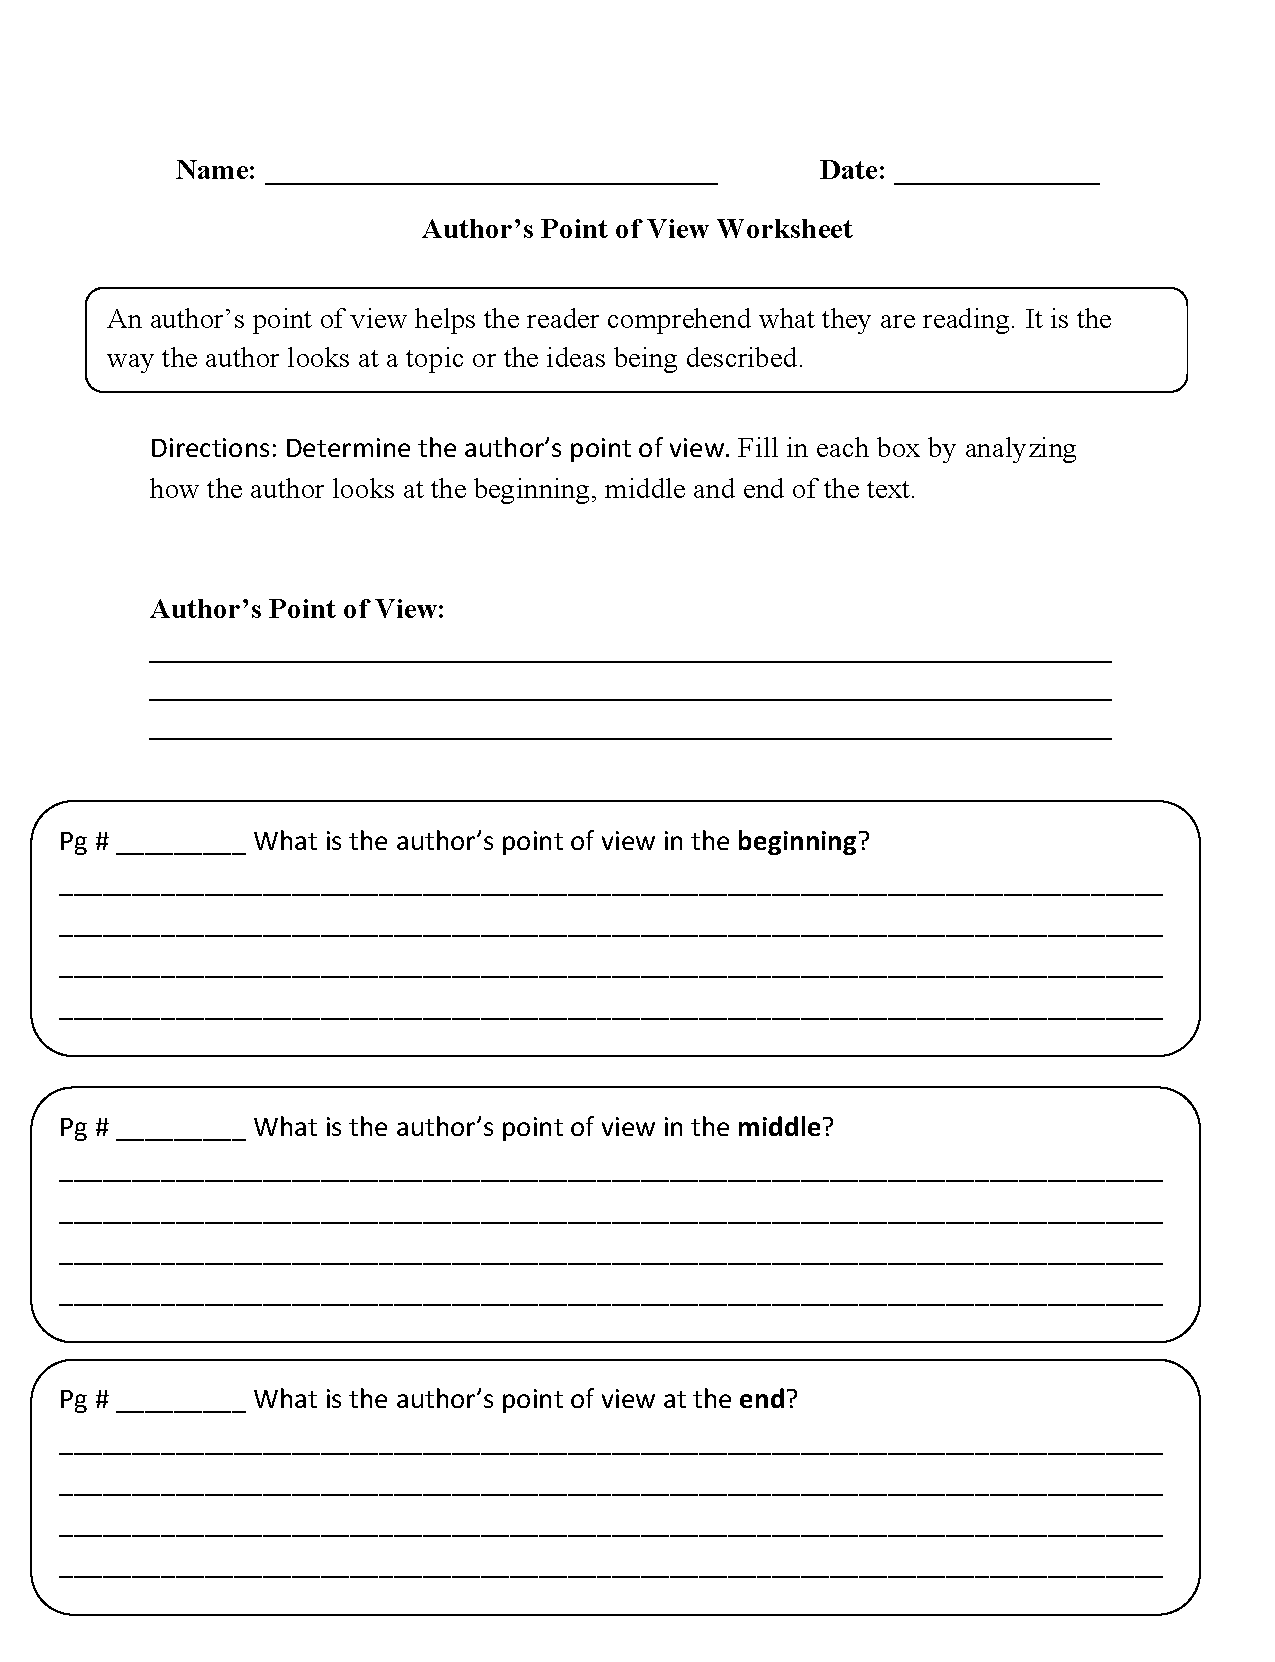 Proatmealus  Unique Englishlinxcom  Point Of View Worksheets With Fascinating Point Of View Worksheets With Divine Opposites Worksheet For Kindergarten Also Homonyms Worksheets Middle School In Addition Number Pattern Worksheets For Nd Grade And Two Digit By One Digit Multiplication Worksheet As Well As Fraction Circle Worksheets Additionally Subtraction Fun Worksheets From Englishlinxcom With Proatmealus  Fascinating Englishlinxcom  Point Of View Worksheets With Divine Point Of View Worksheets And Unique Opposites Worksheet For Kindergarten Also Homonyms Worksheets Middle School In Addition Number Pattern Worksheets For Nd Grade From Englishlinxcom